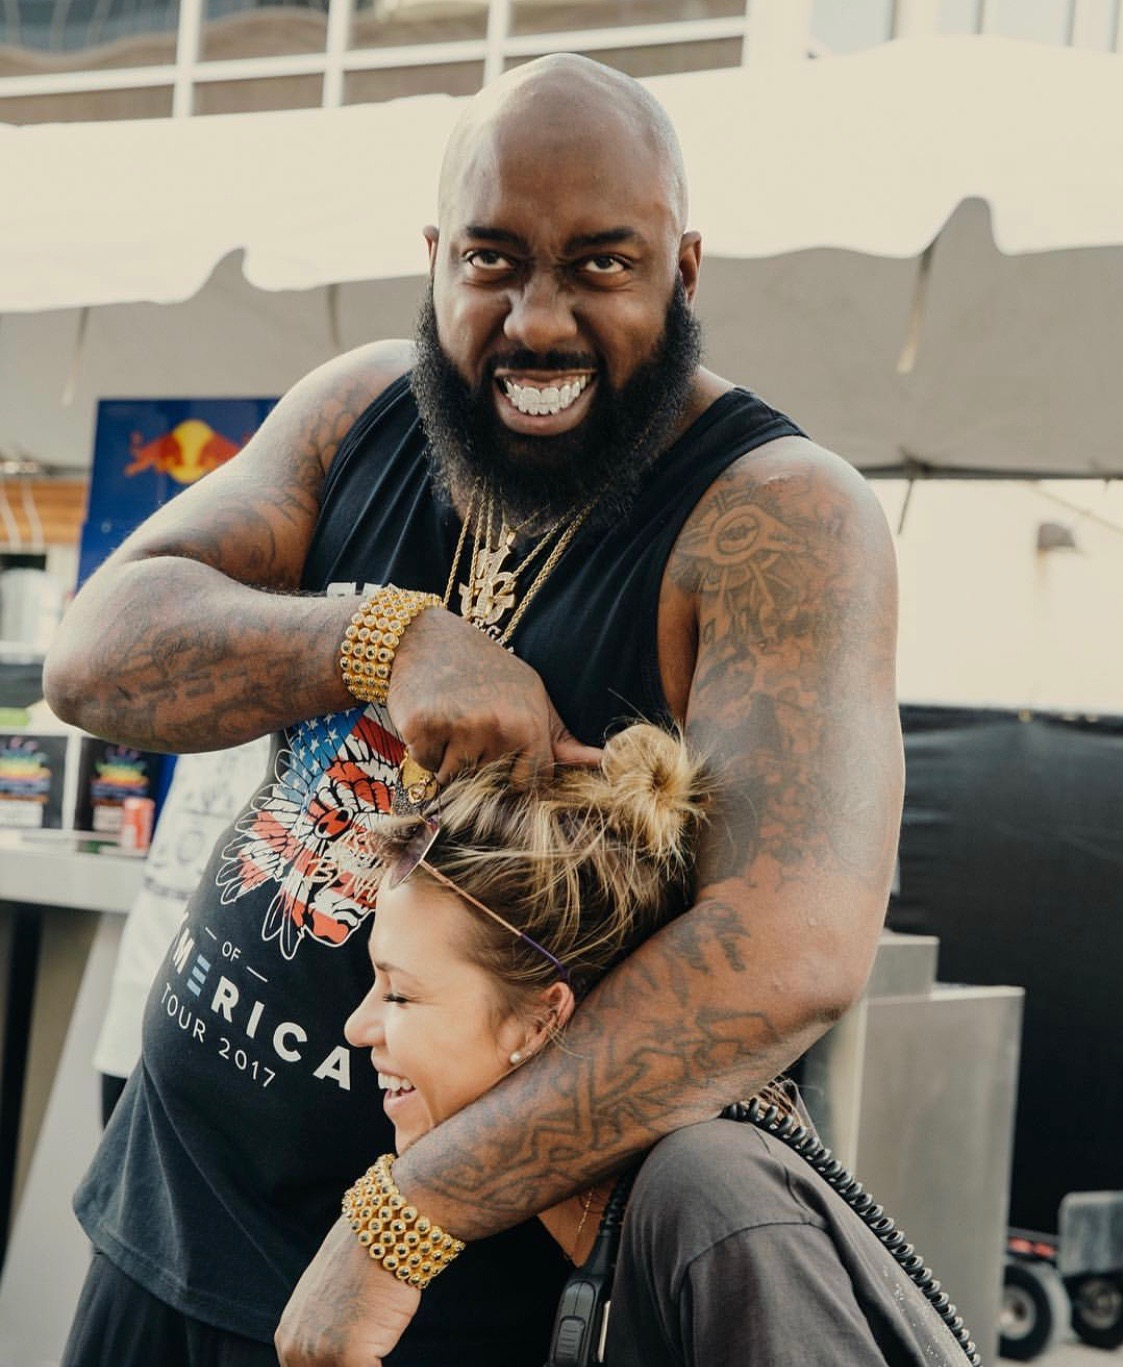 Claire pictured with Trae the truth (Photo BY:  Greg noire )